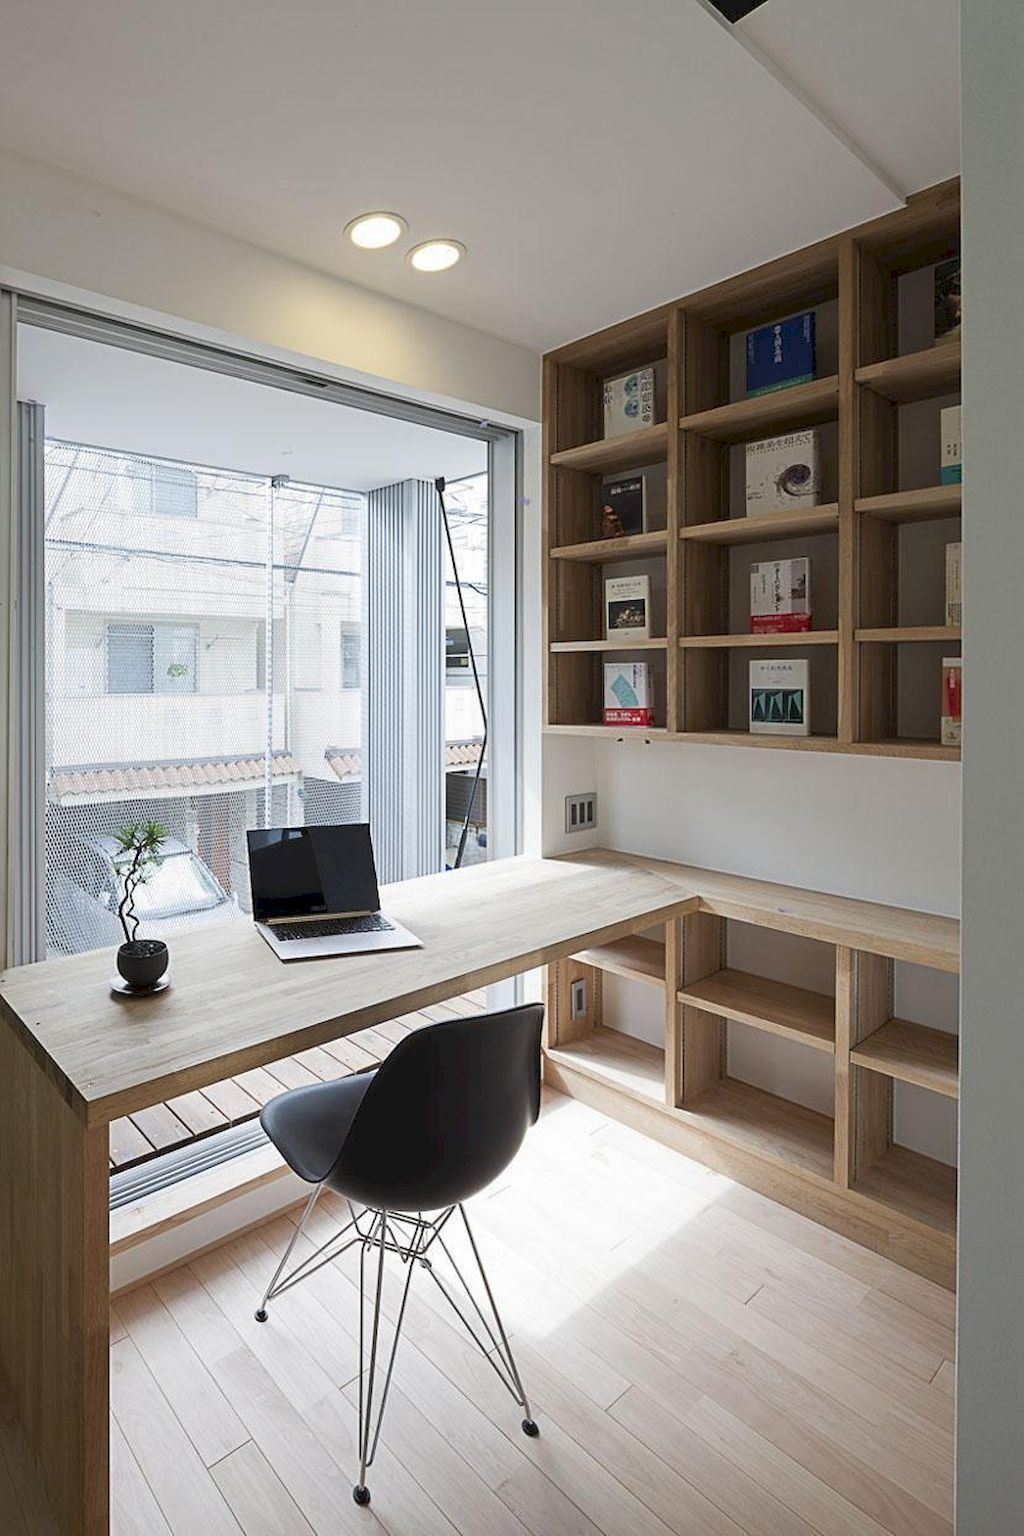 dumbfounding diy ideas minimalist bedroom purple gray home design colour interior small boho pillows also most popular study table designs and children   chairs today rh pinterest